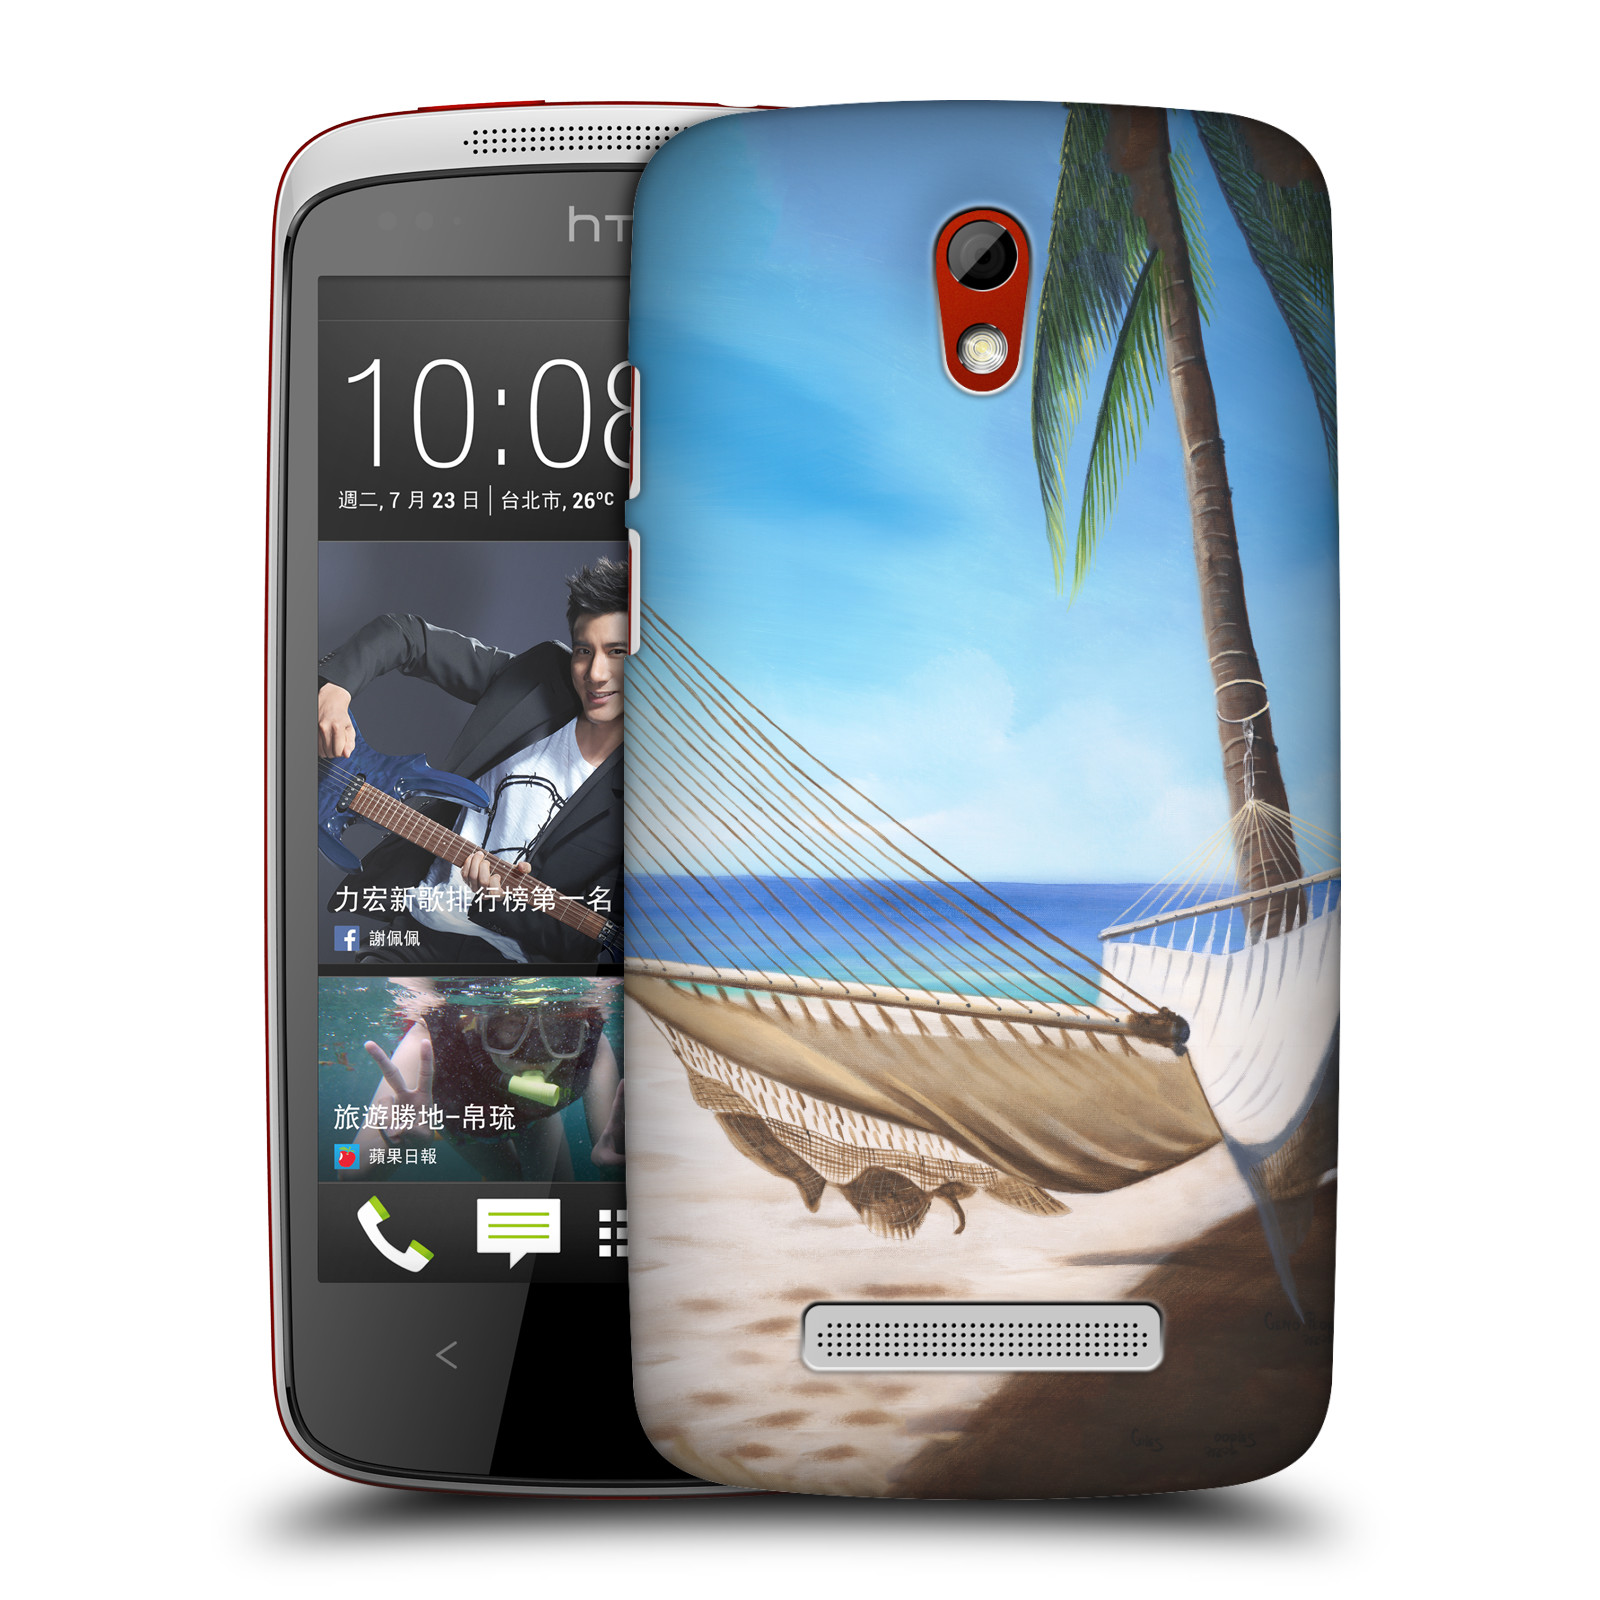 OFFICIAL-GENO-PEOPLES-ART-HOLIDAY-HARD-BACK-CASE-FOR-HTC-PHONES-2